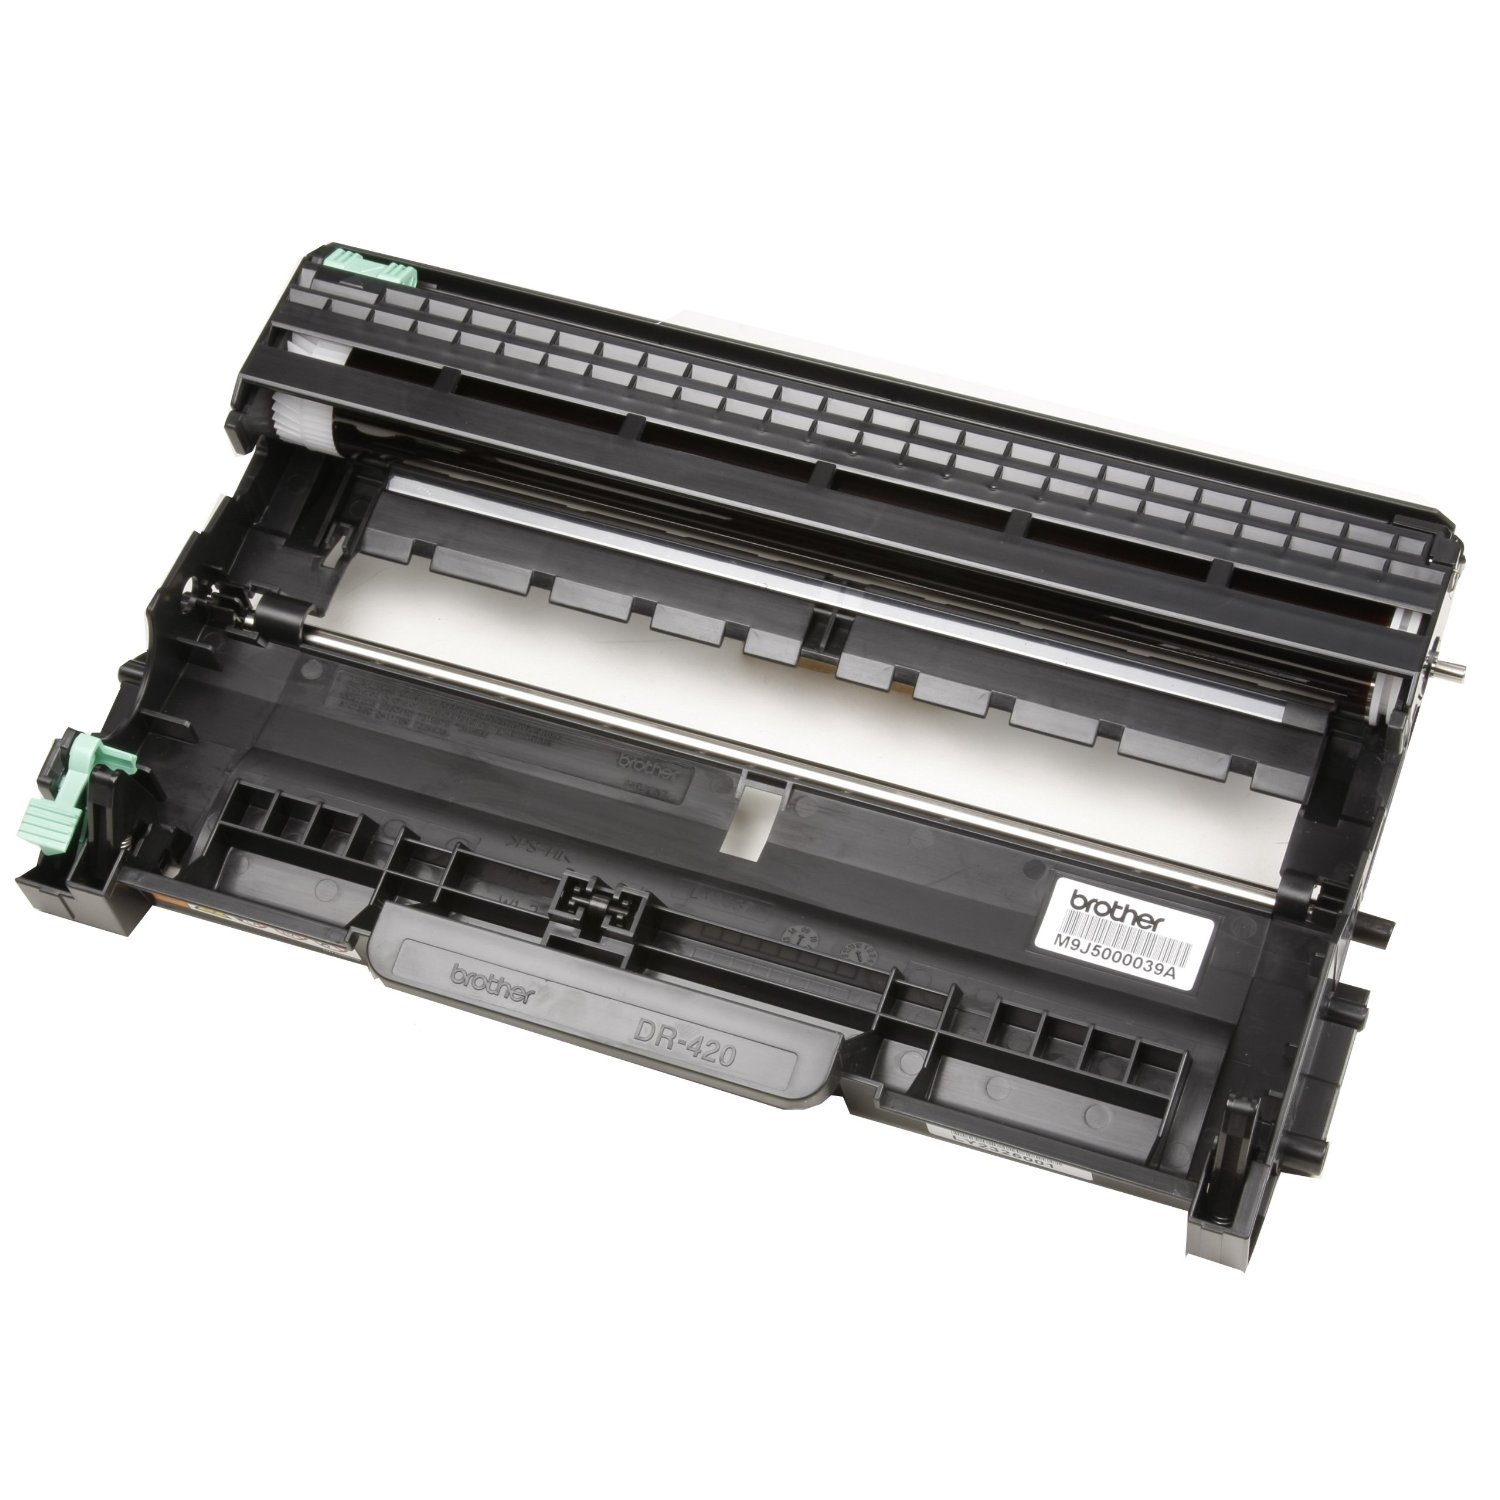 Toner Brother 2270dw Brother Dcp-2270dw Drum